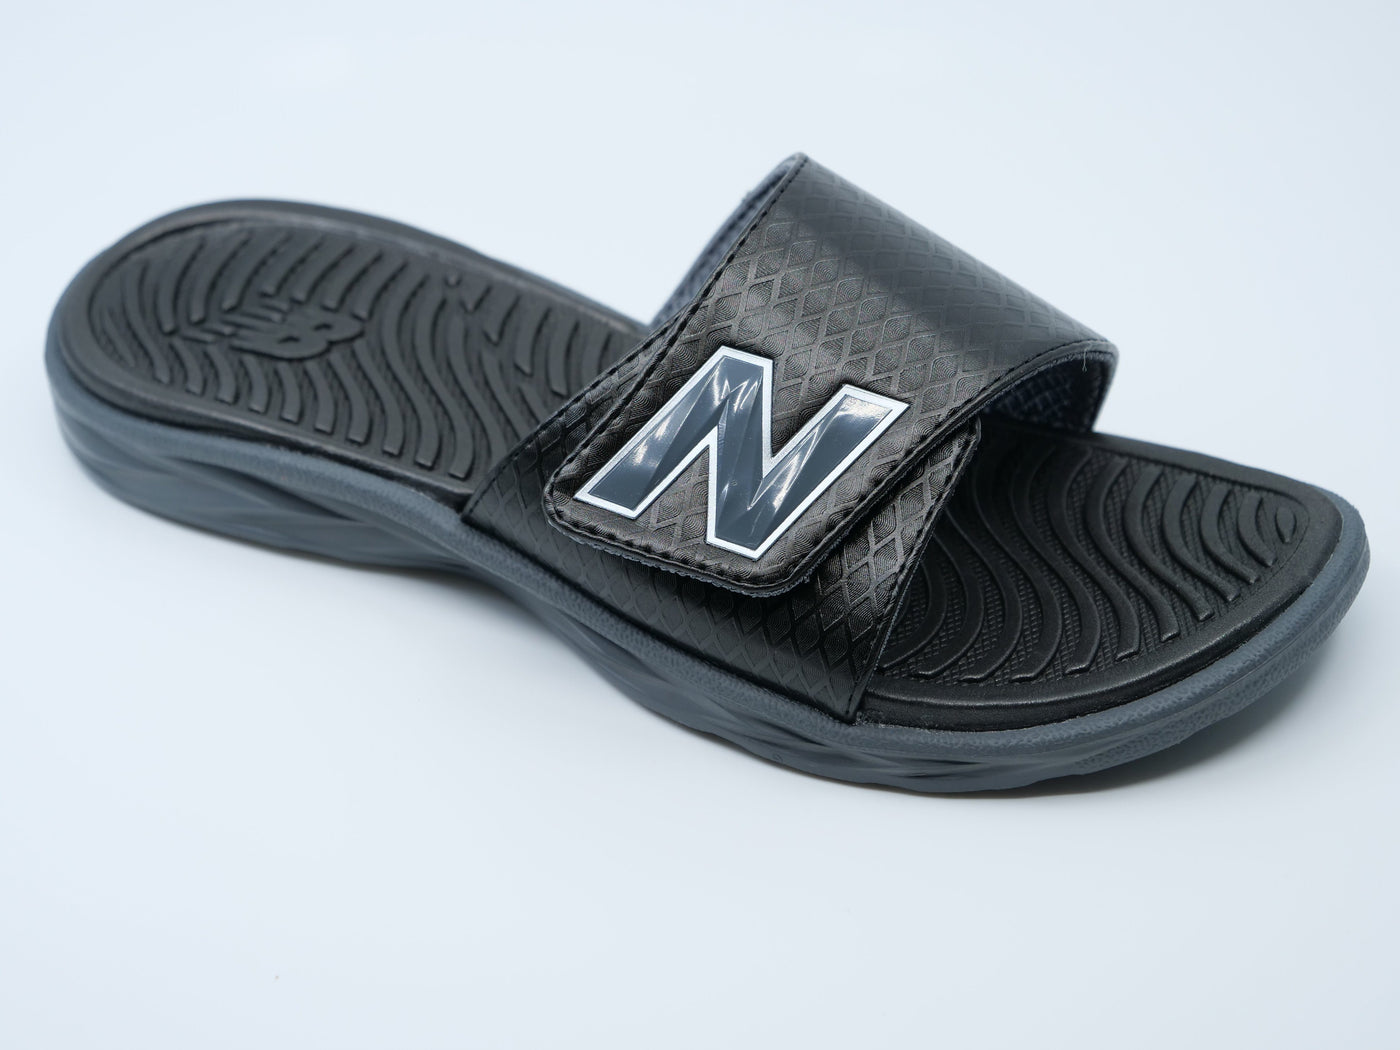 0dd5530cd9a66 ... New Balance Men's Black 3067 Response Slide Sandals at  headbangersports.com